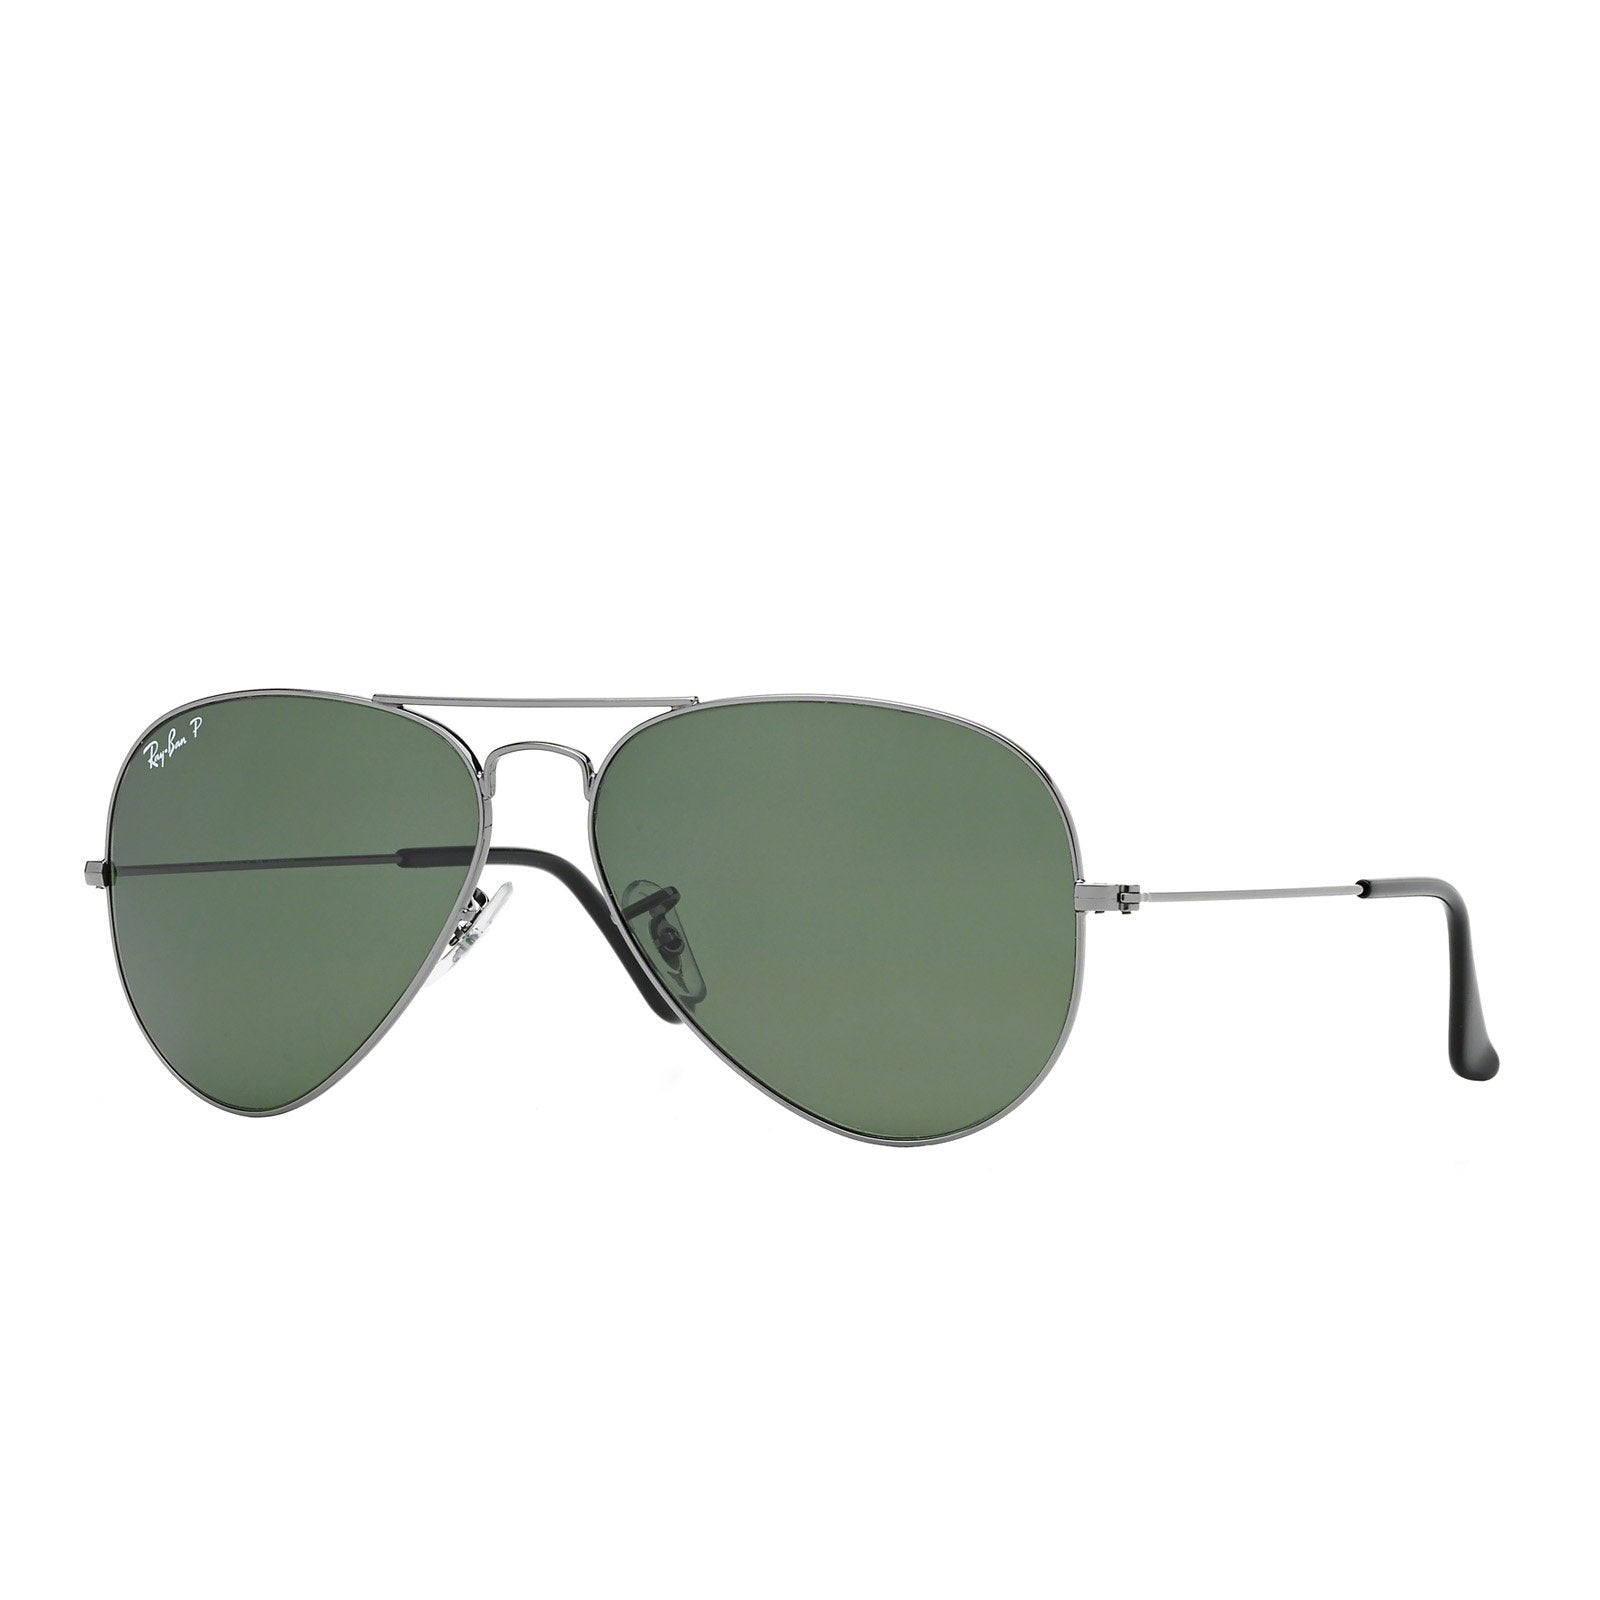 Ray-Ban RB3025 004/58 Sunglasses